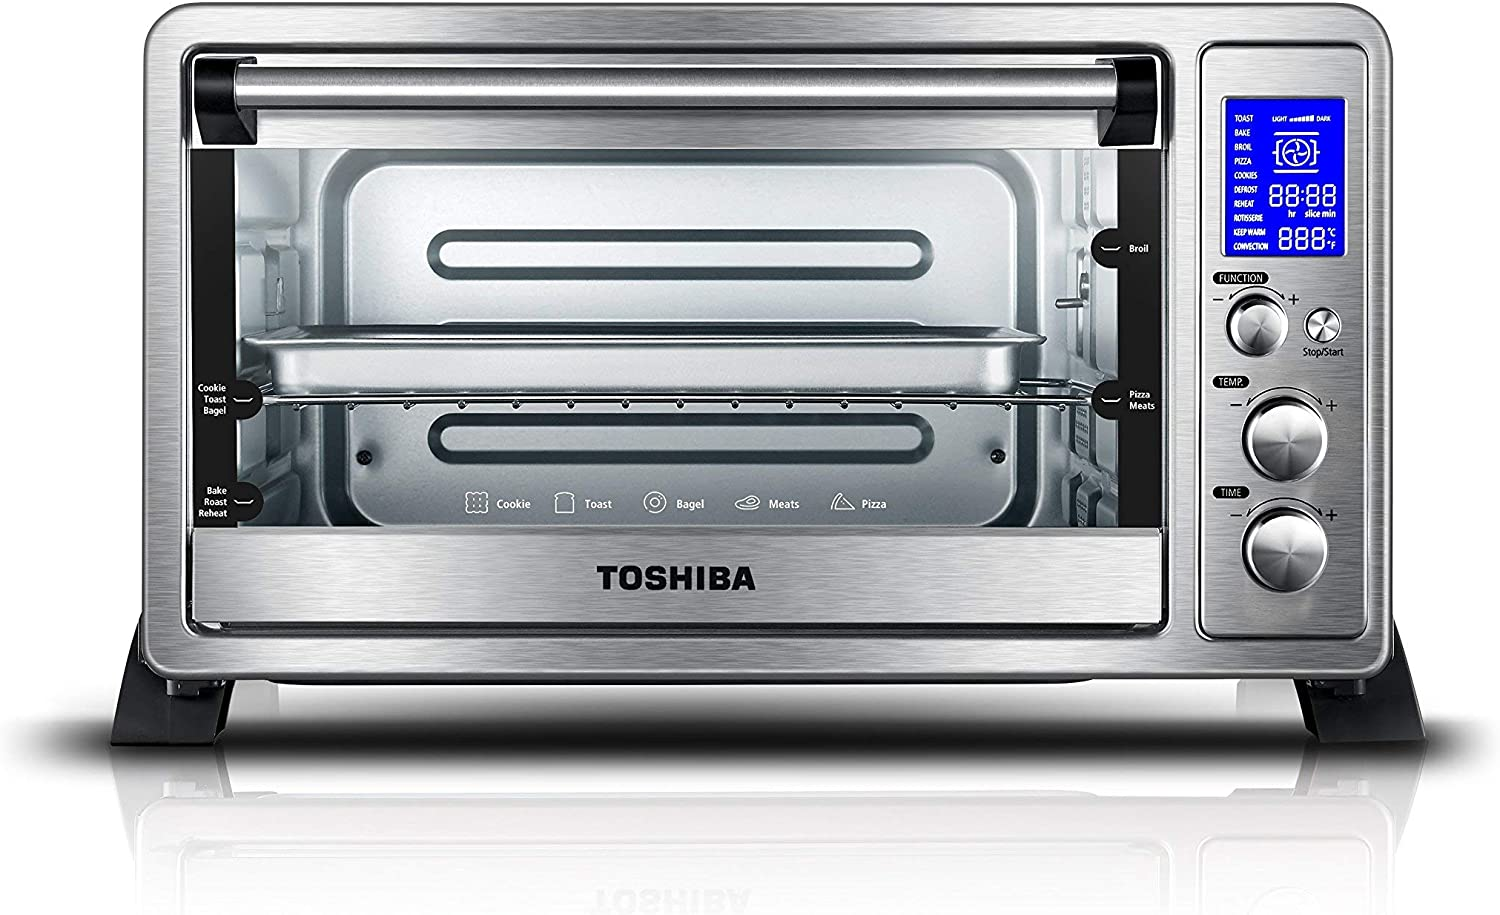 Toshiba AC25CEW-SS Digital Oven with Convection/Toast/Bake/Broil Function, 6-Slice Bread/12-Inch Pizza, Stainless Steel (Renewed)